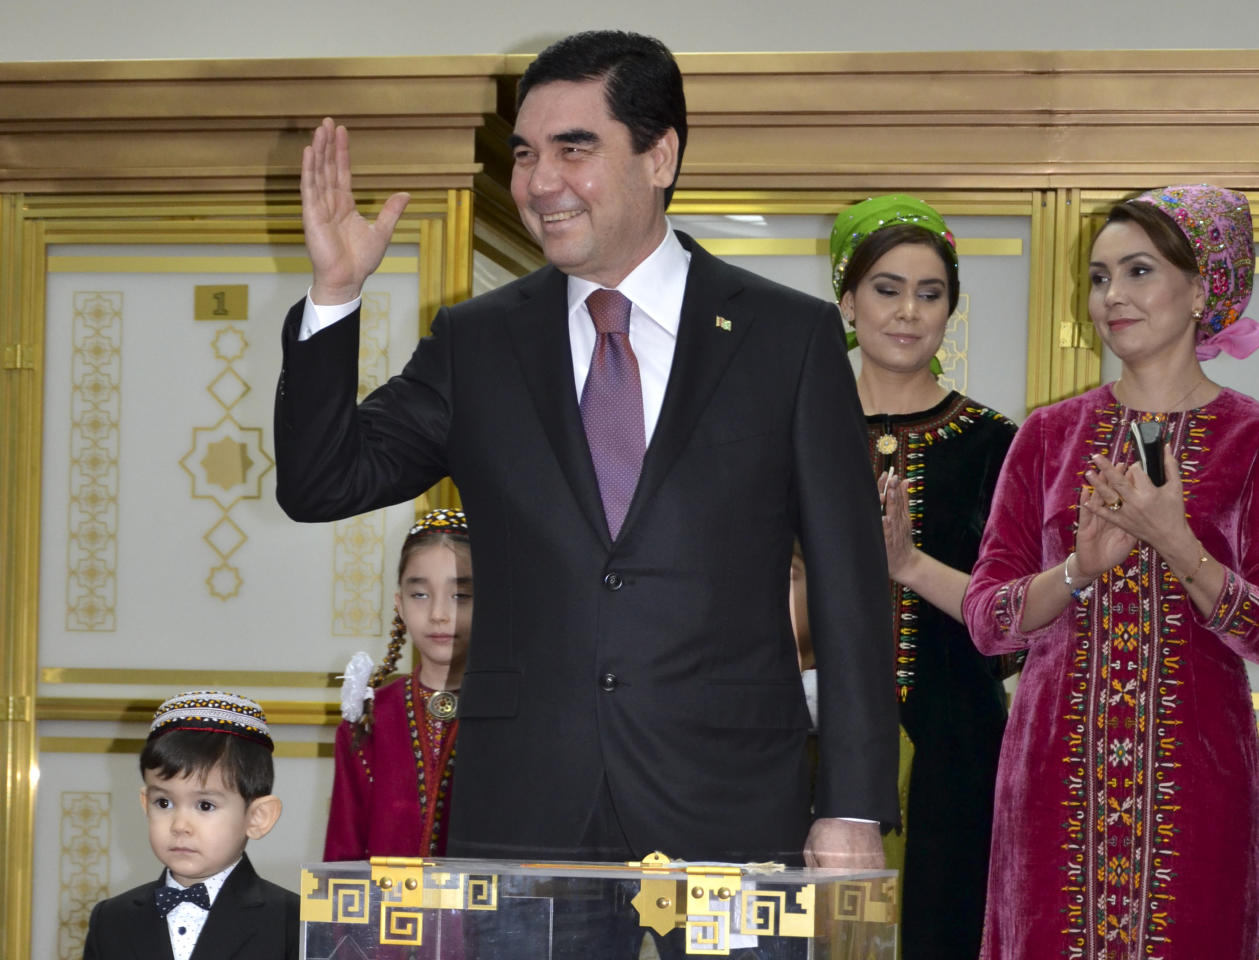 <p>Age: 60<br />Came to power: 2007<br />Gurbanguly Berdymukhamedov, known as the Tyrant of Turkmenistan, came to power after the death of Saparmurat Niyazov, who was known for renaming the months of the year after himself and his mother. Former dentist Gurbanguly has endeavoured to supercede his predecessor with his eccentricity, including a 21m marble and gold leaf statue of himself as well as peforming songs to his citizens. (AP Photo/Alexander Vershinin, File) </p>